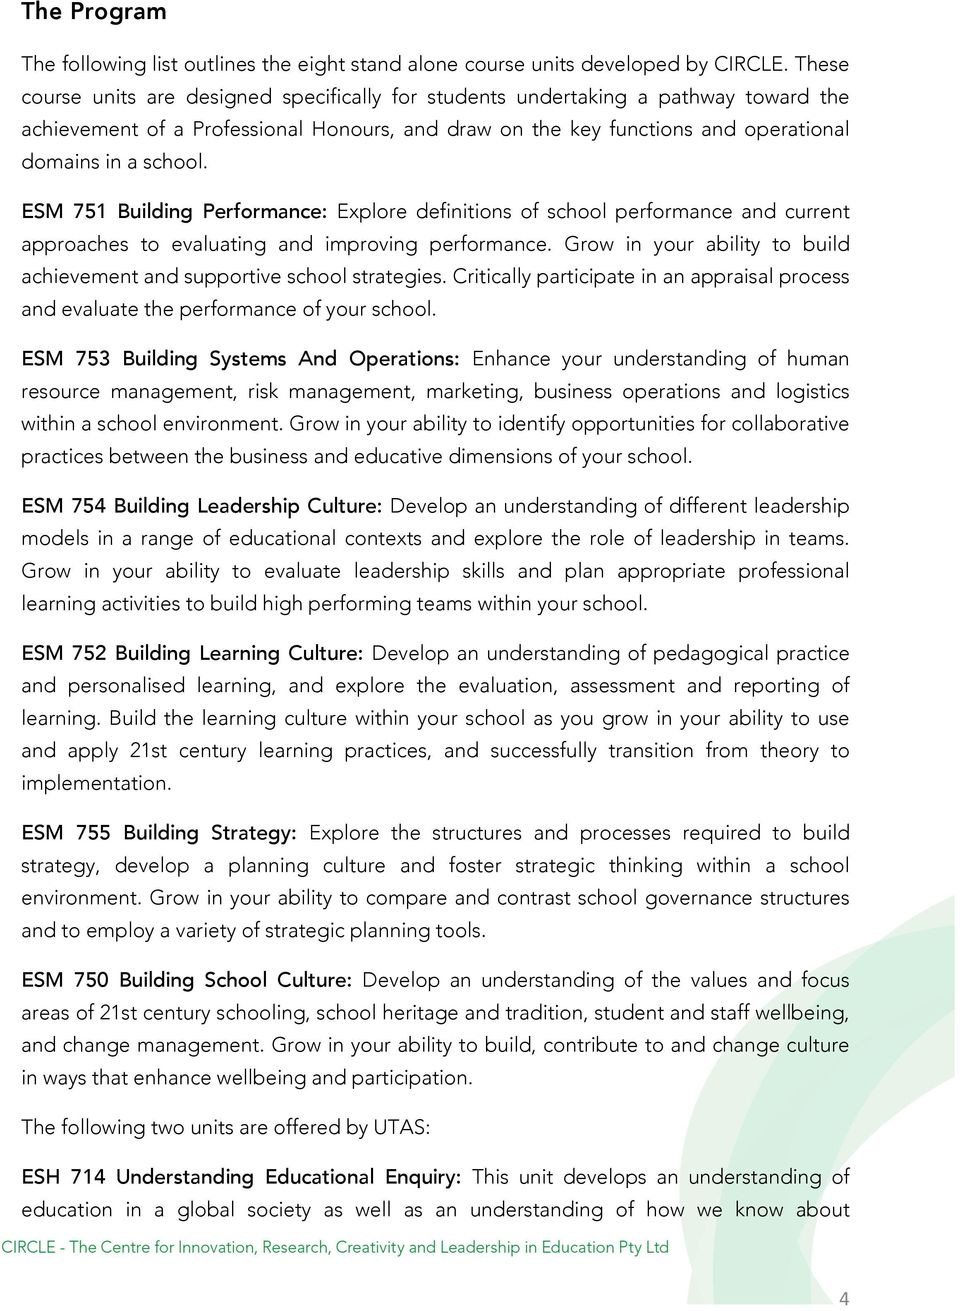 ESM 751 Building Performance: Explore definitions of school performance and current approaches to evaluating and improving performance.